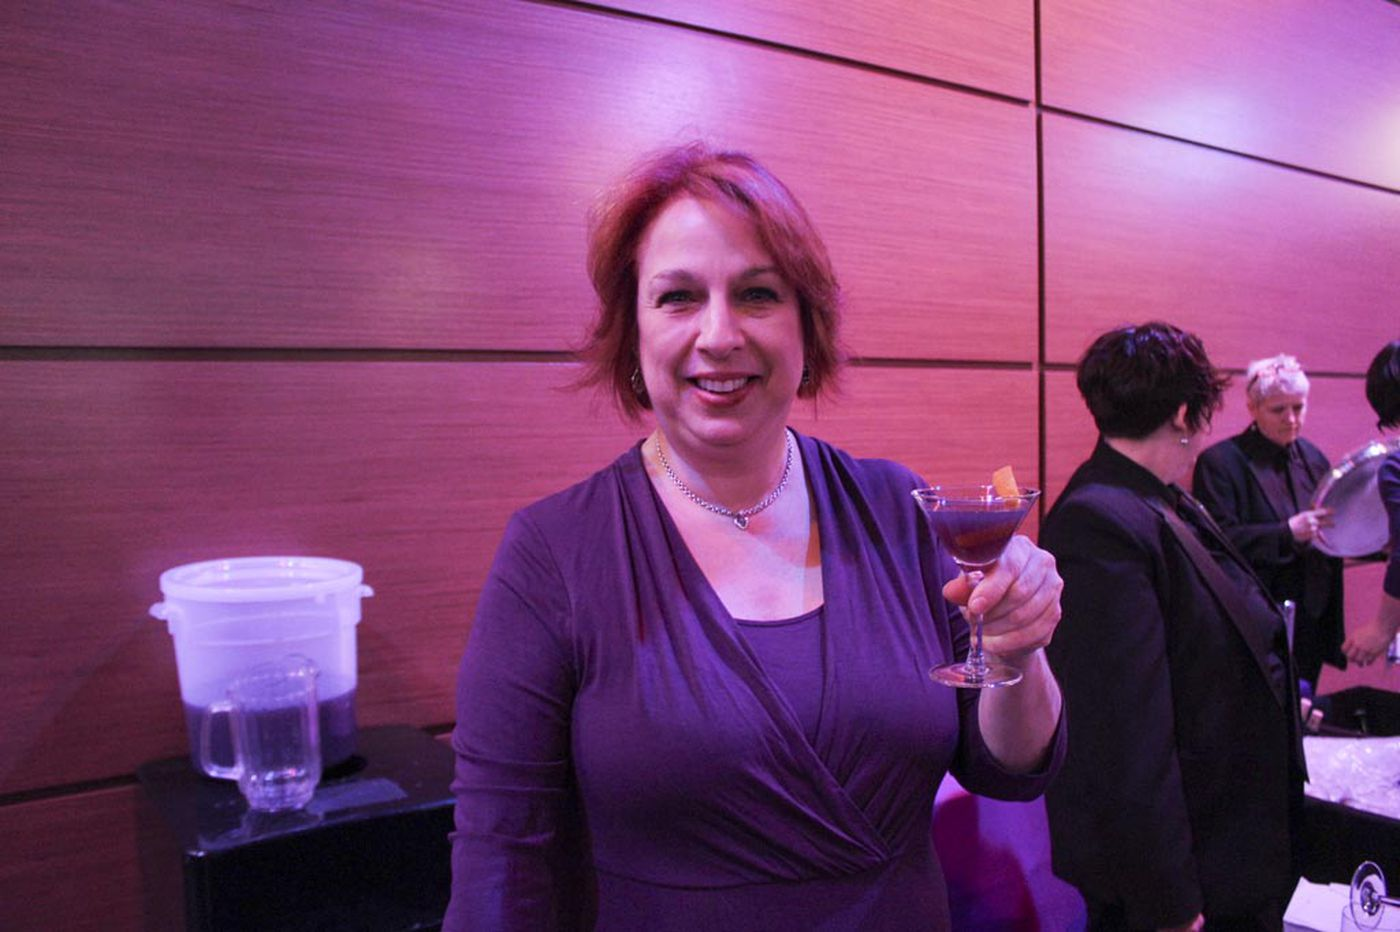 Katie Loeb, 57, cocktail pioneer